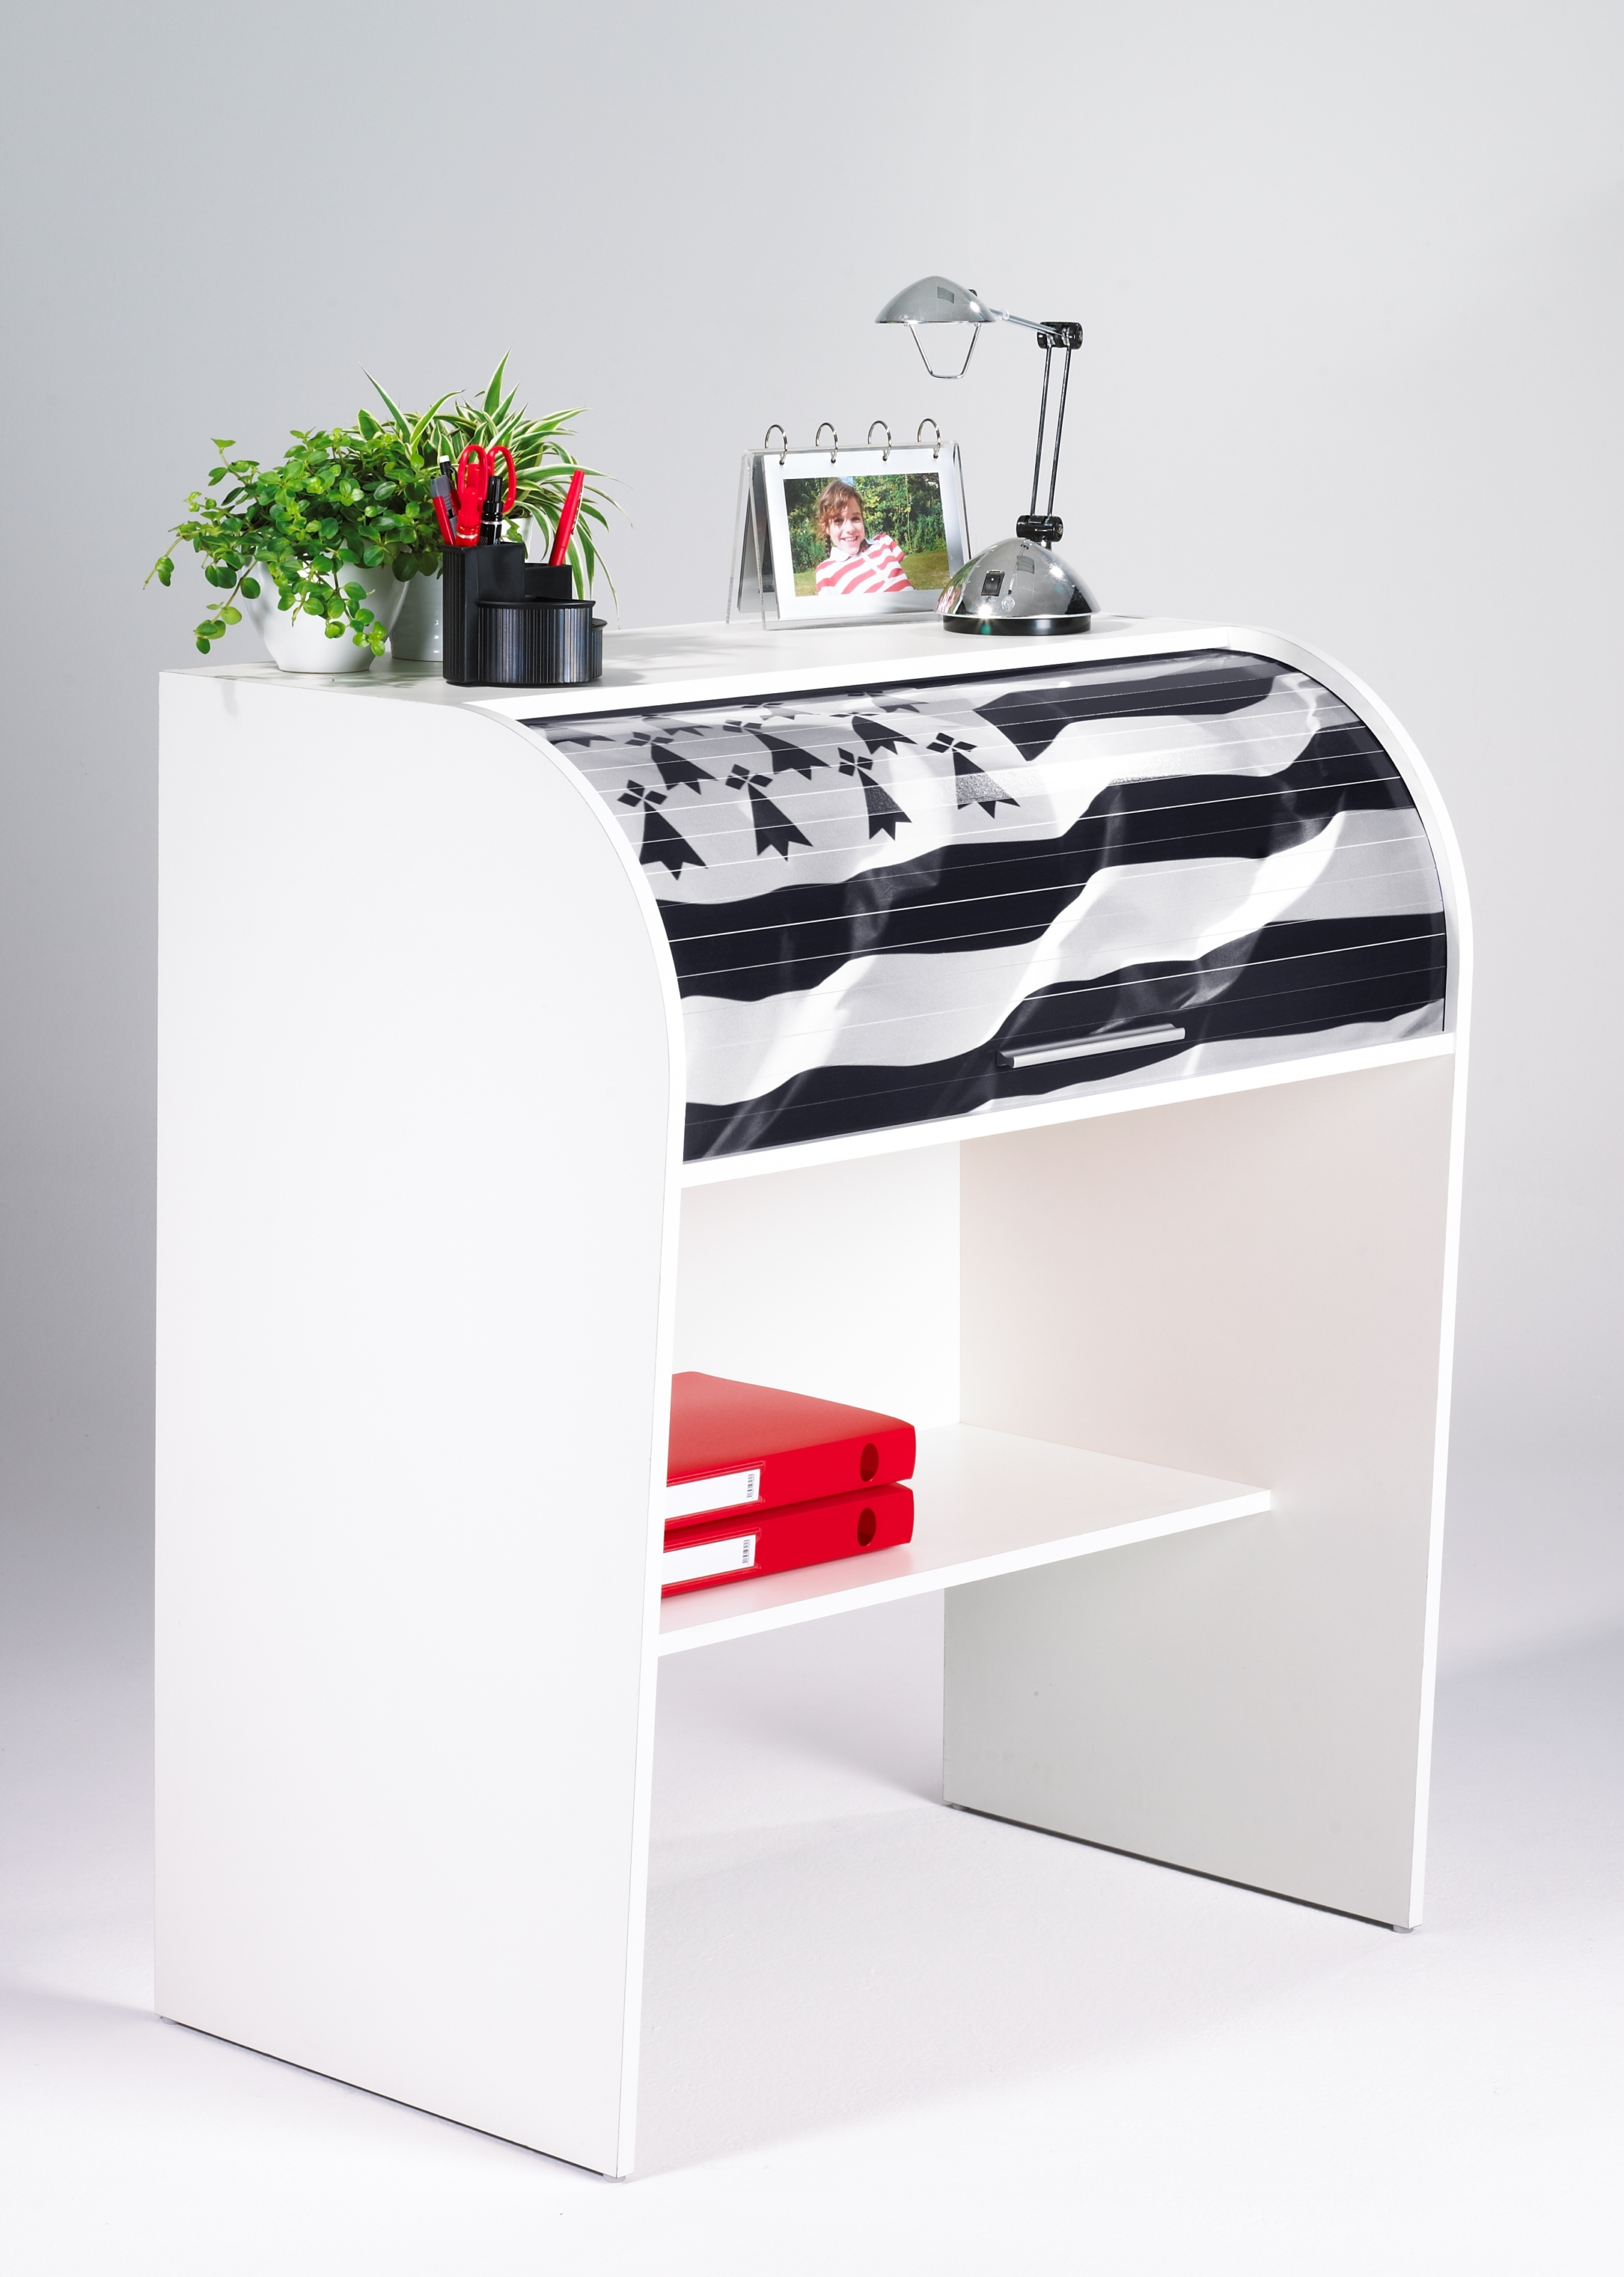 Bureau coulissant lit haut x trio dimix with bureau for Meuble bureau coulissant